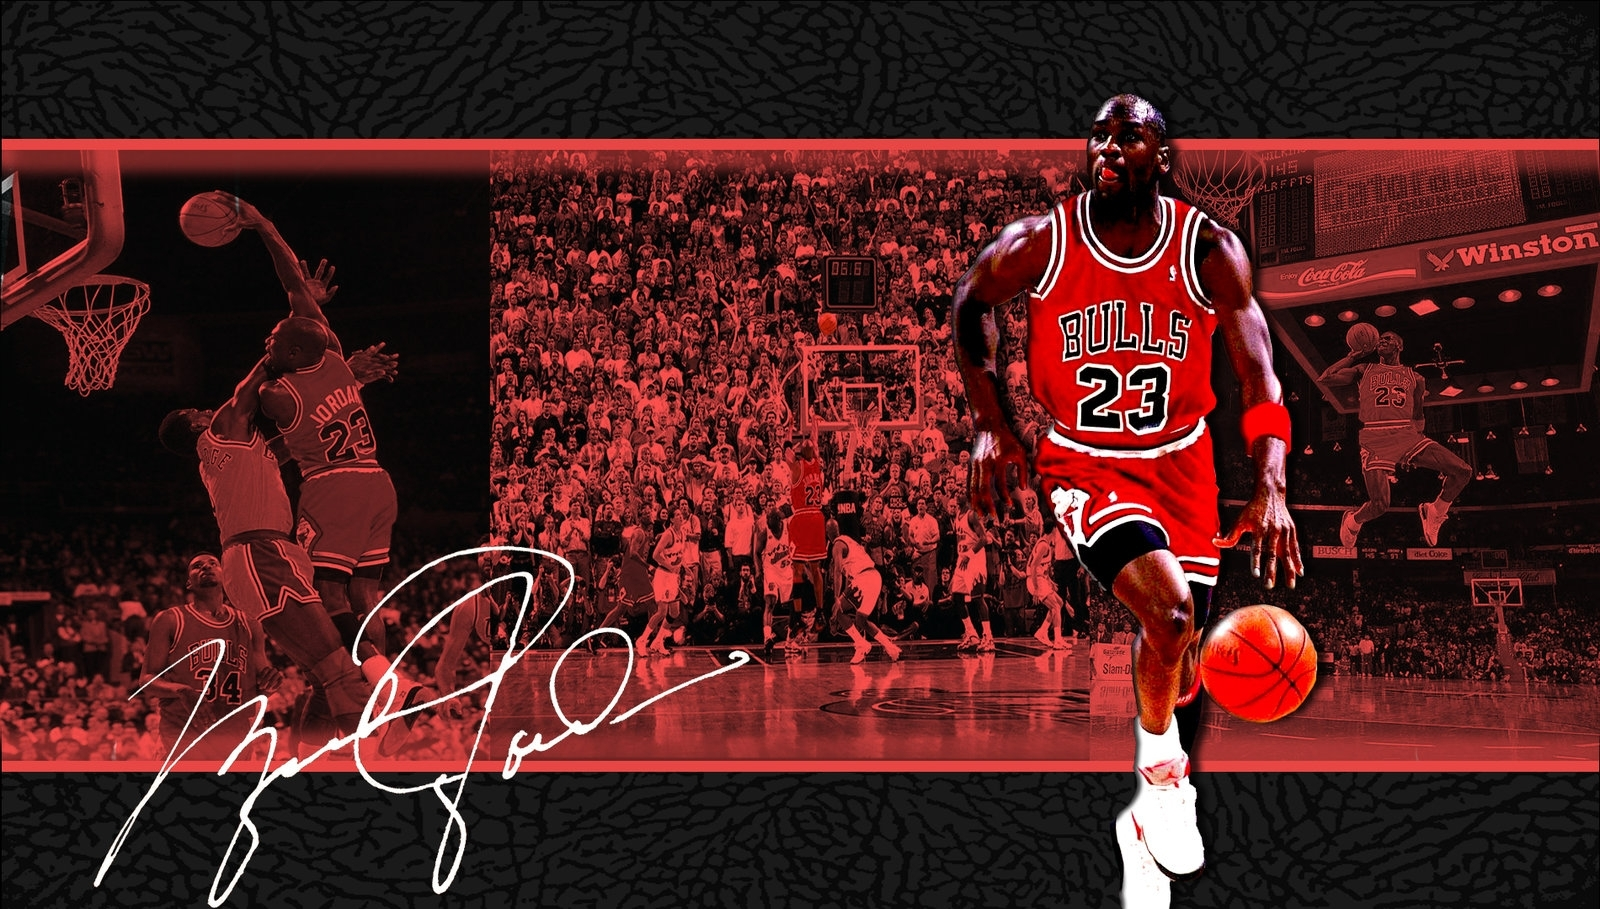 michael jordan cool wallpaper with signature | wallpapers